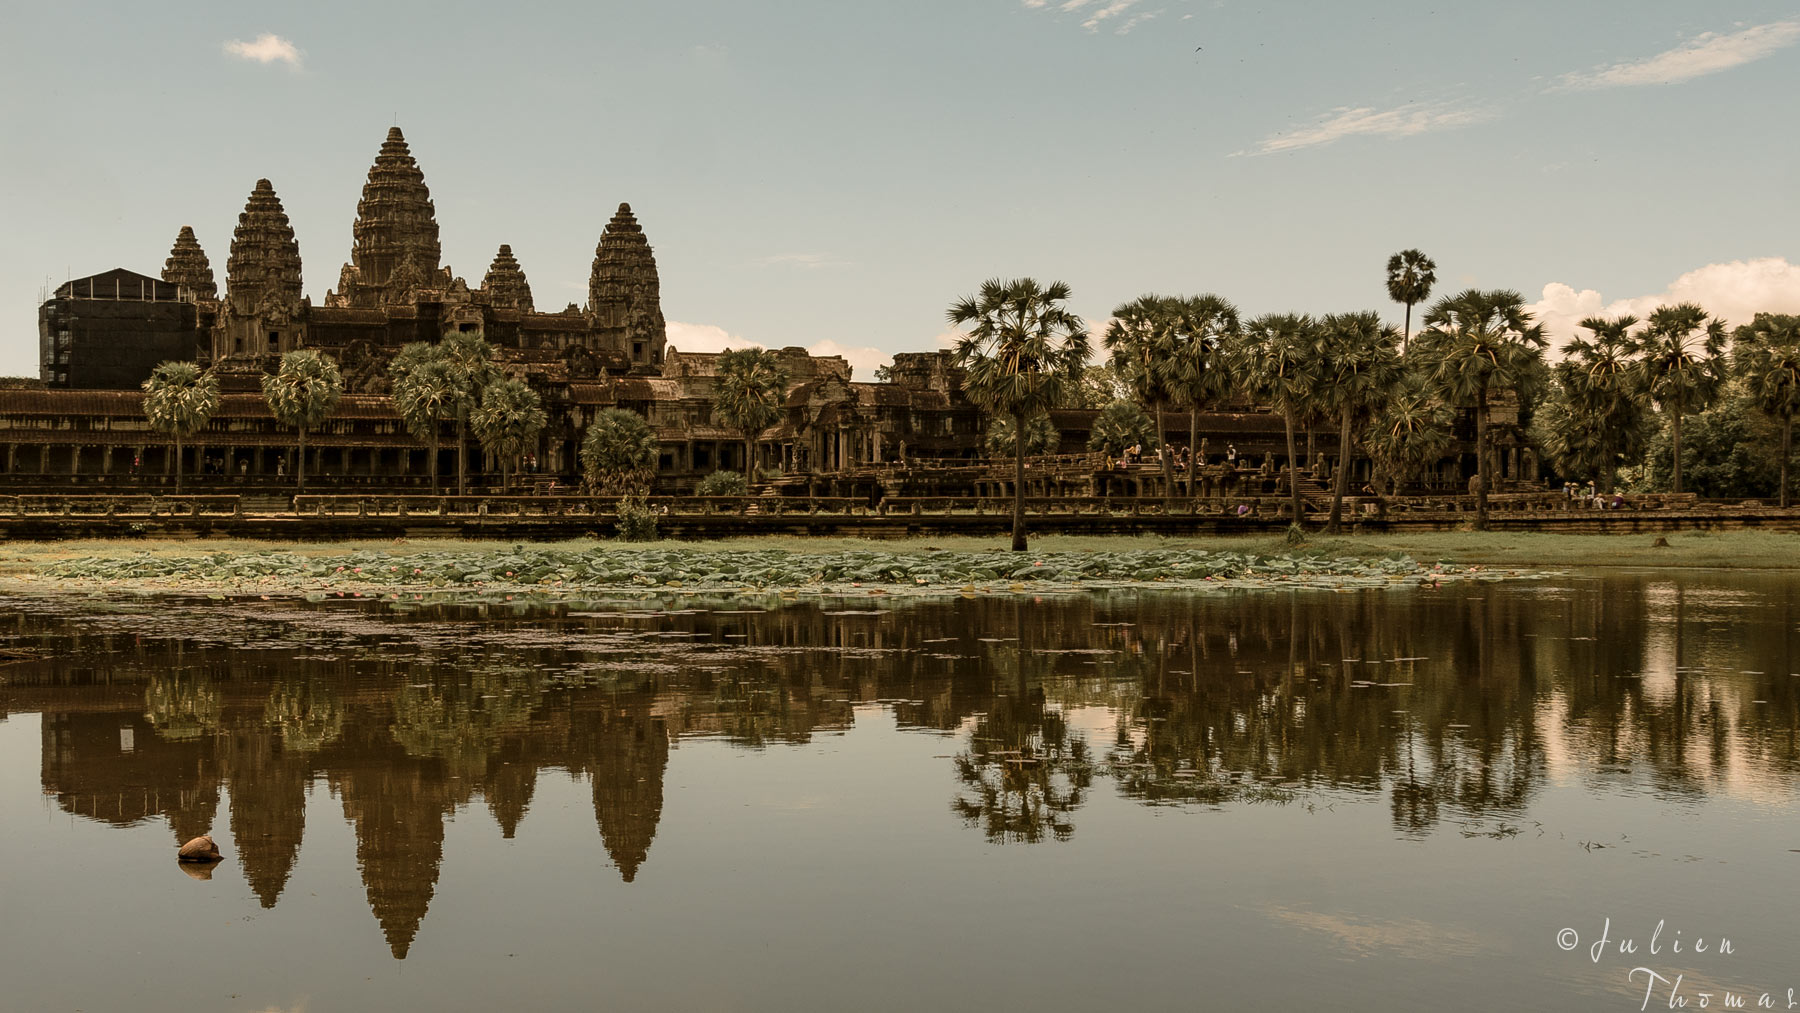 Overview of Angkor Wat entrance at the end of the day from across the lac with the ramparts. Photography Julien Thomas.